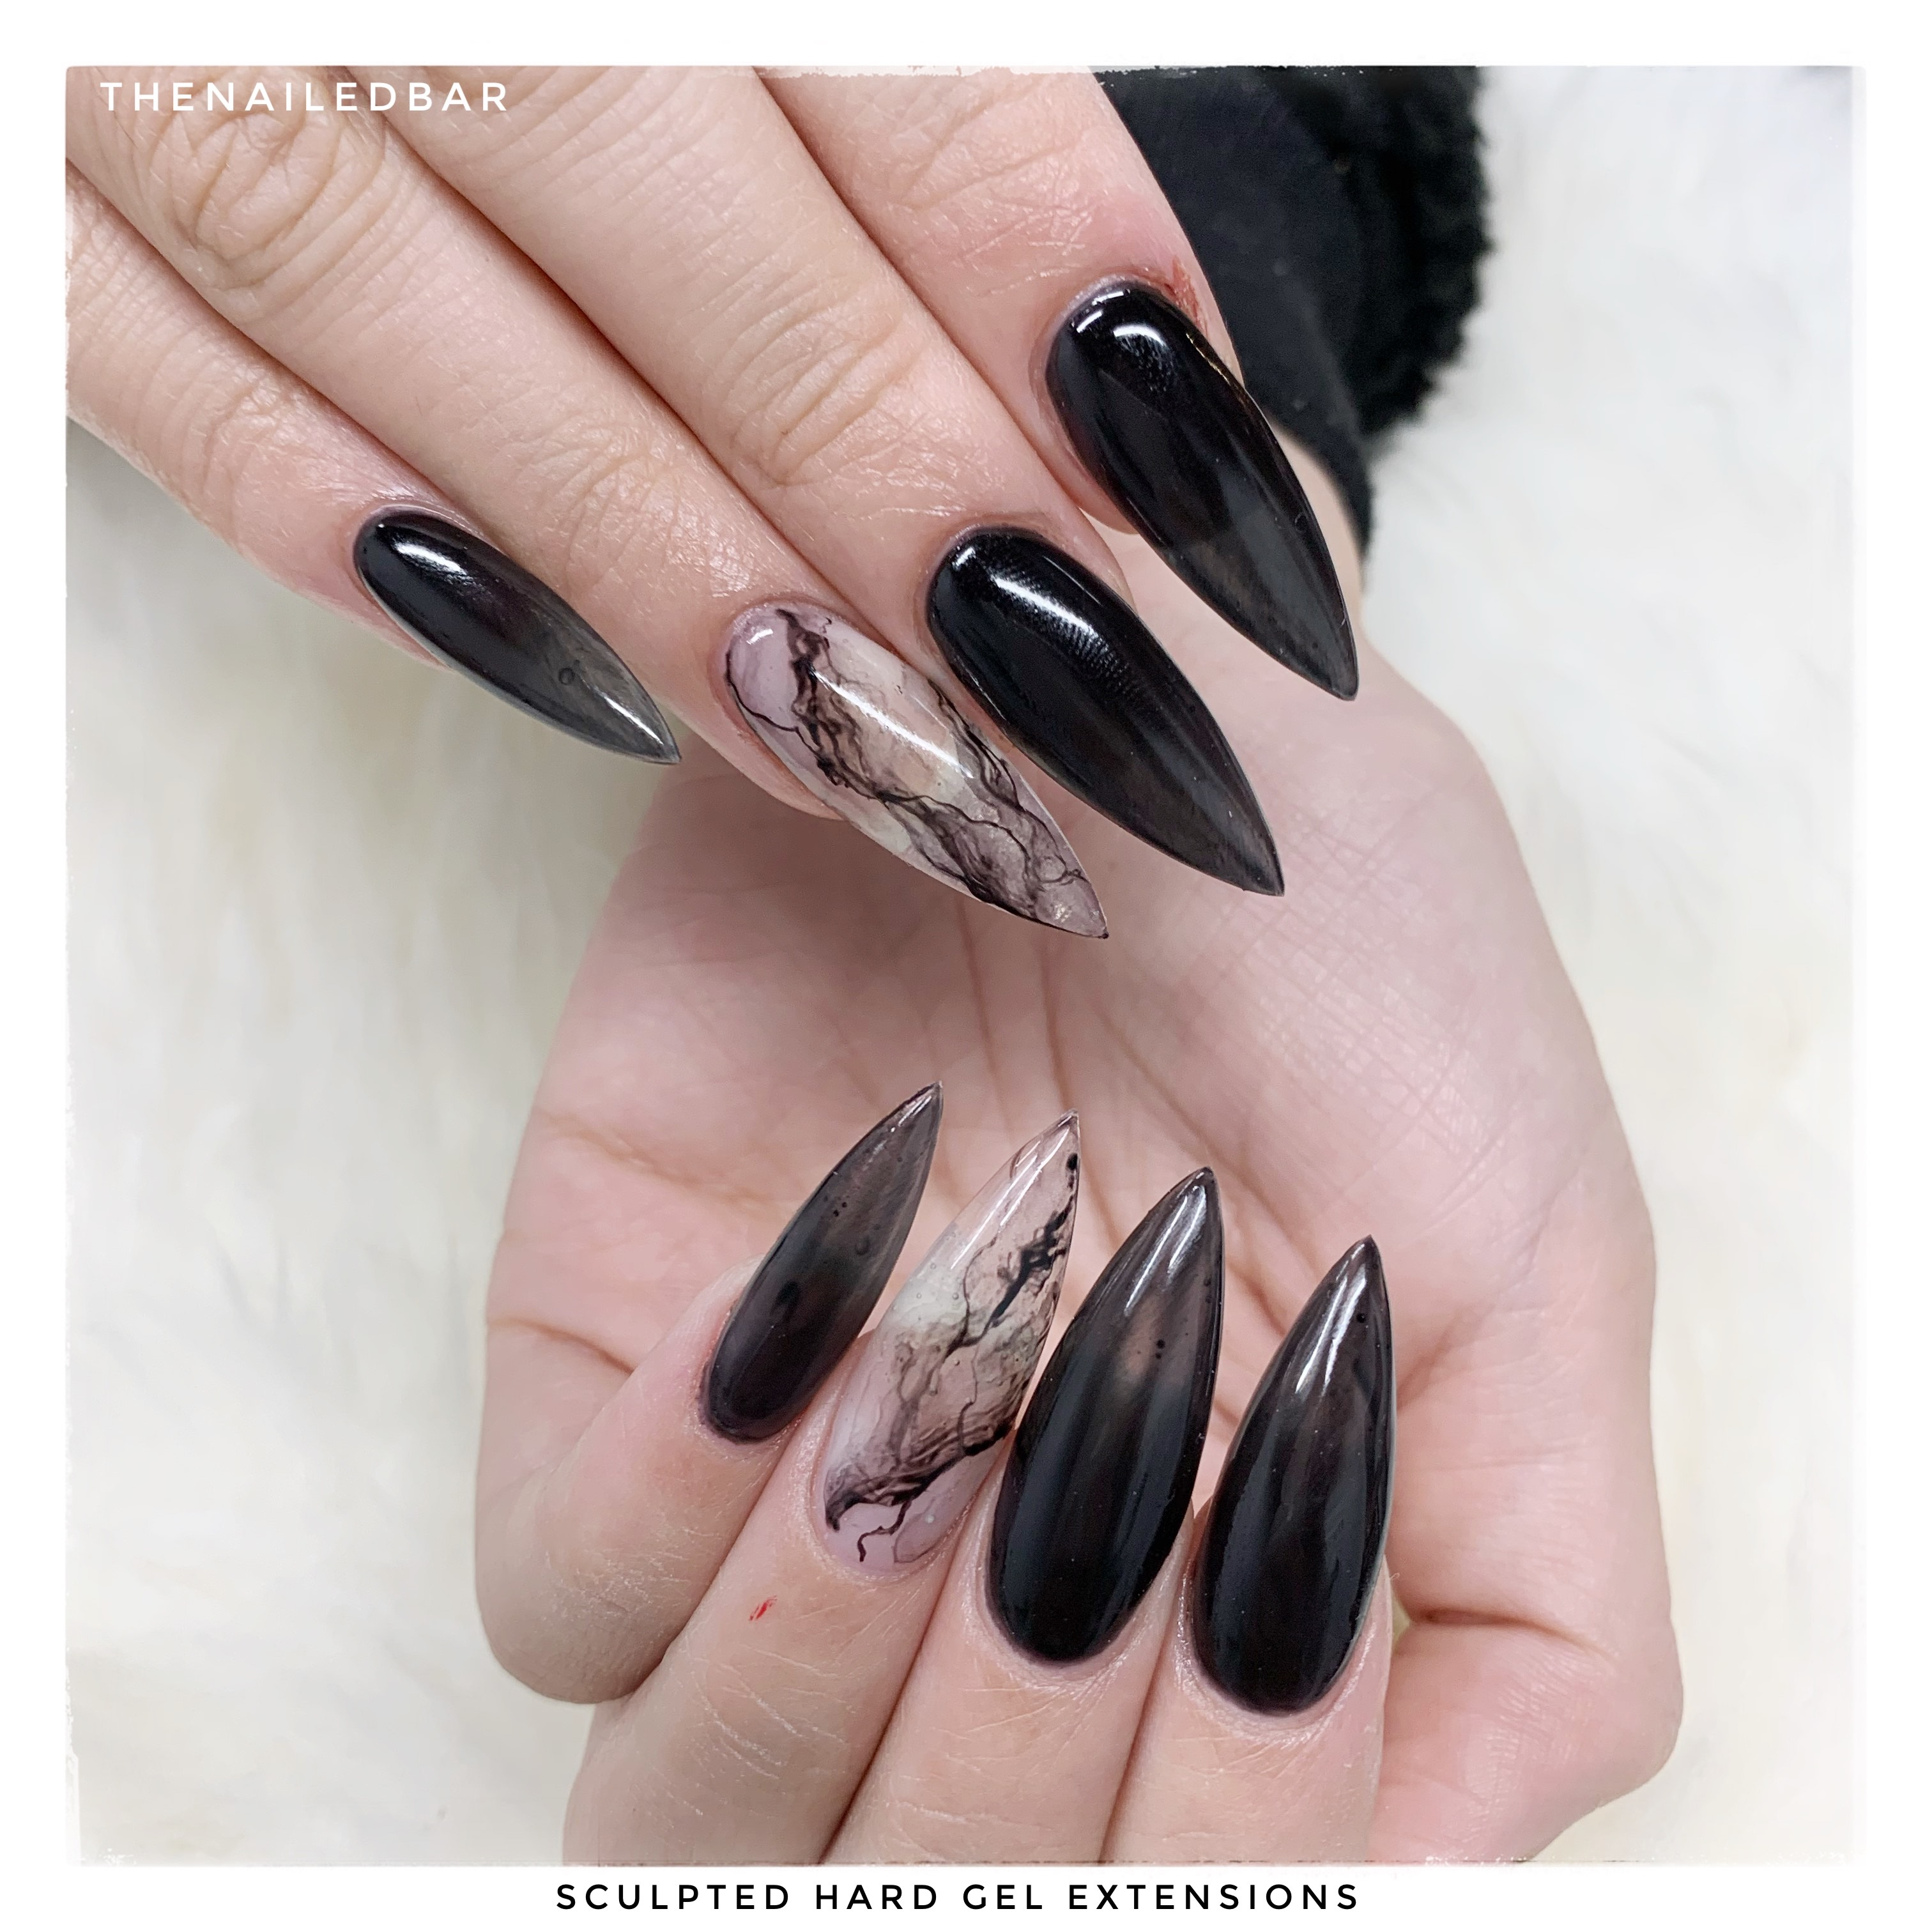 scupted hard gel extensions